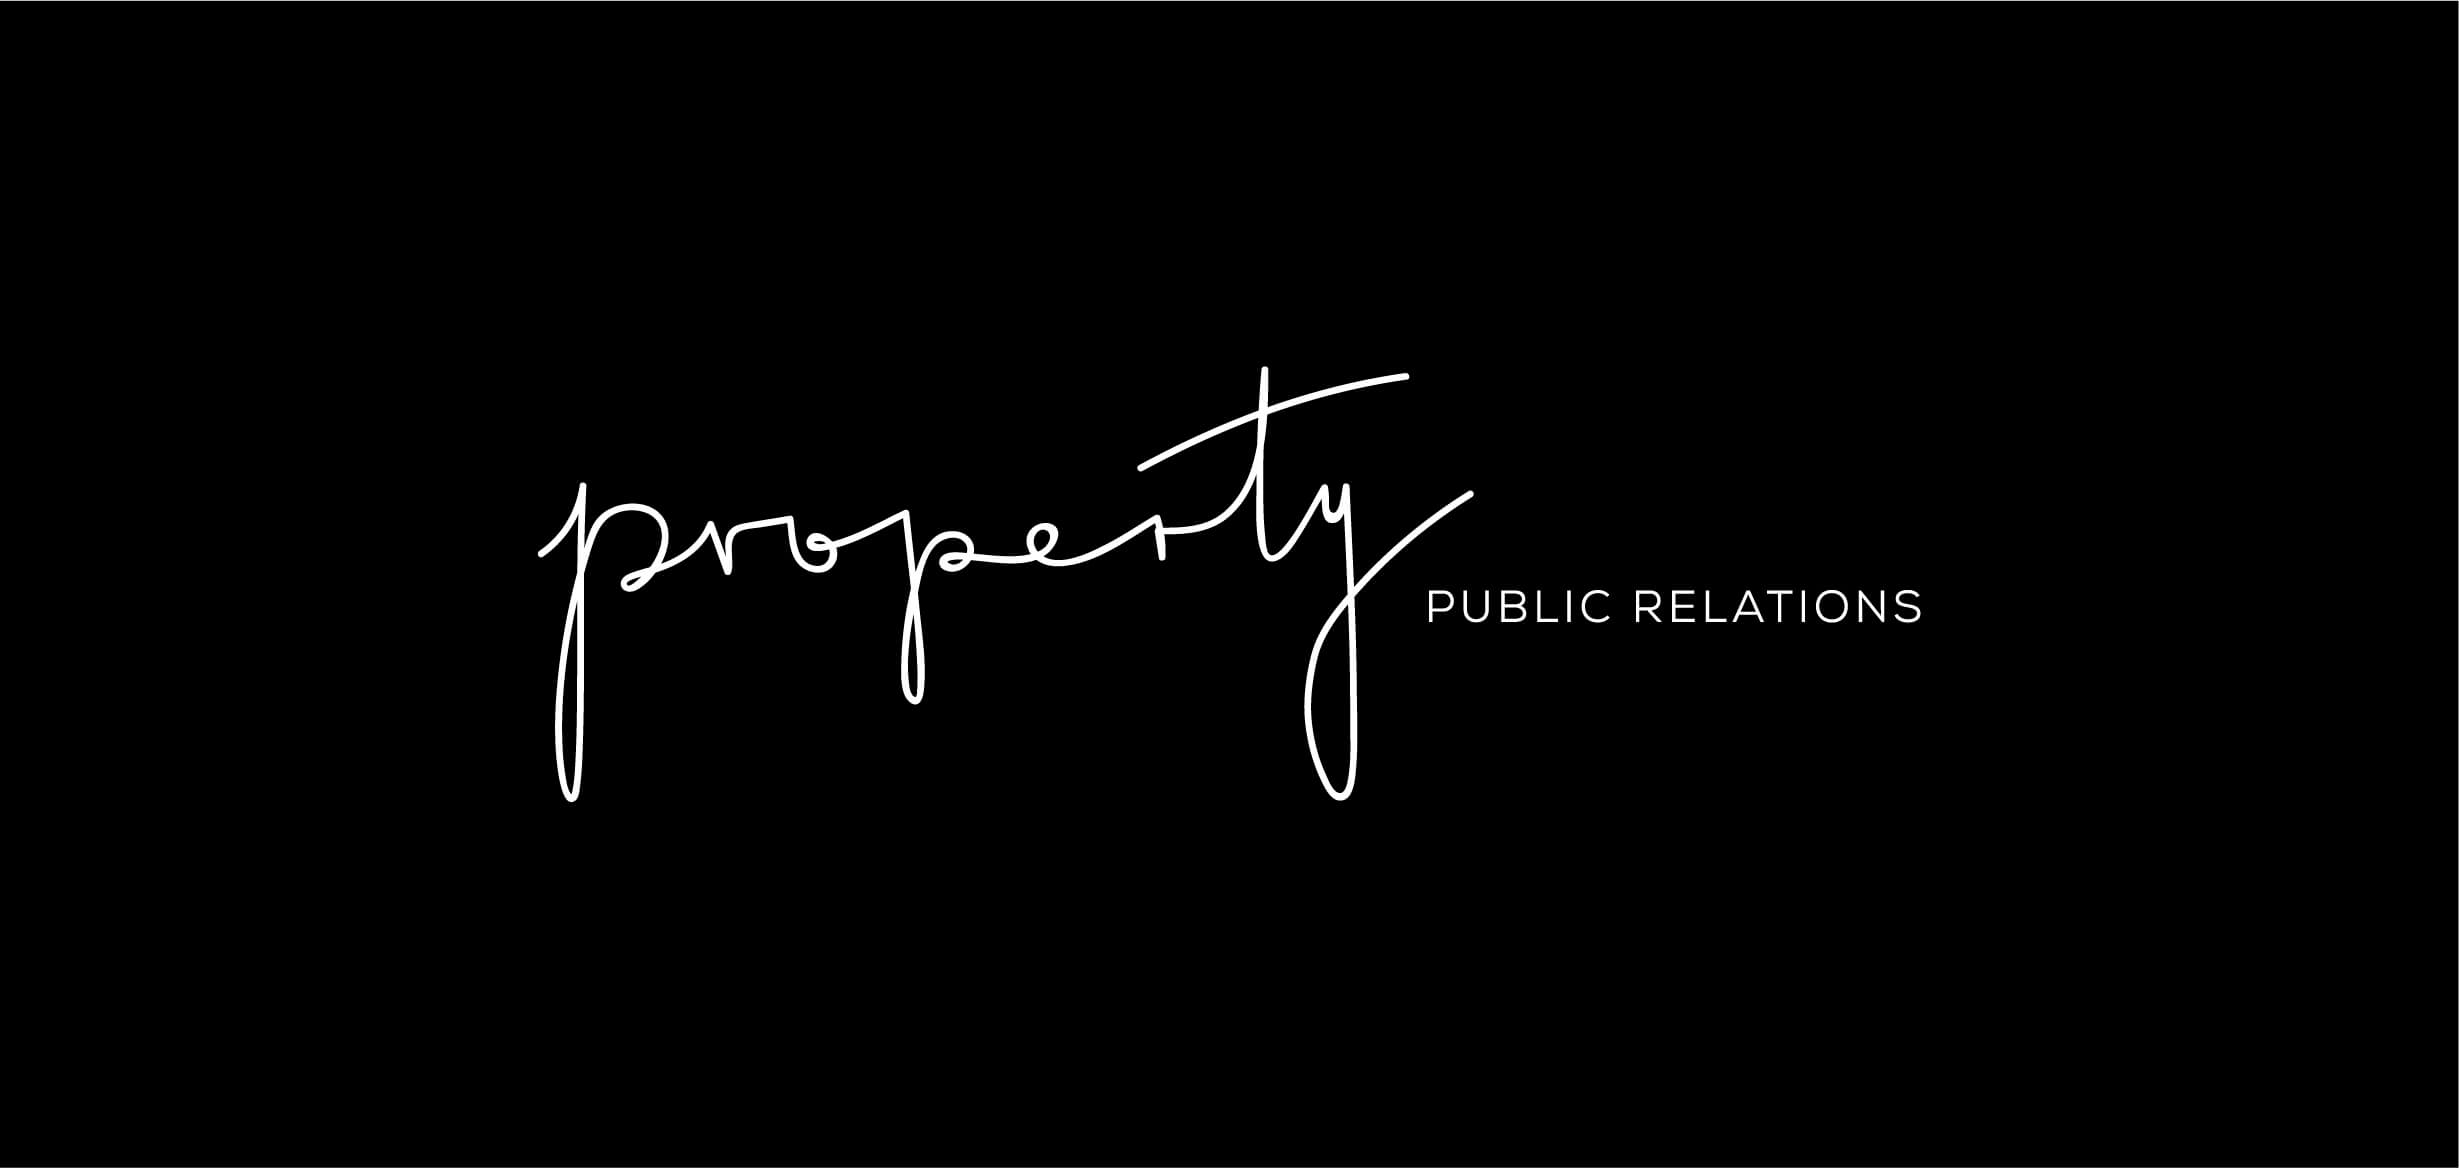 Property – Public Relations